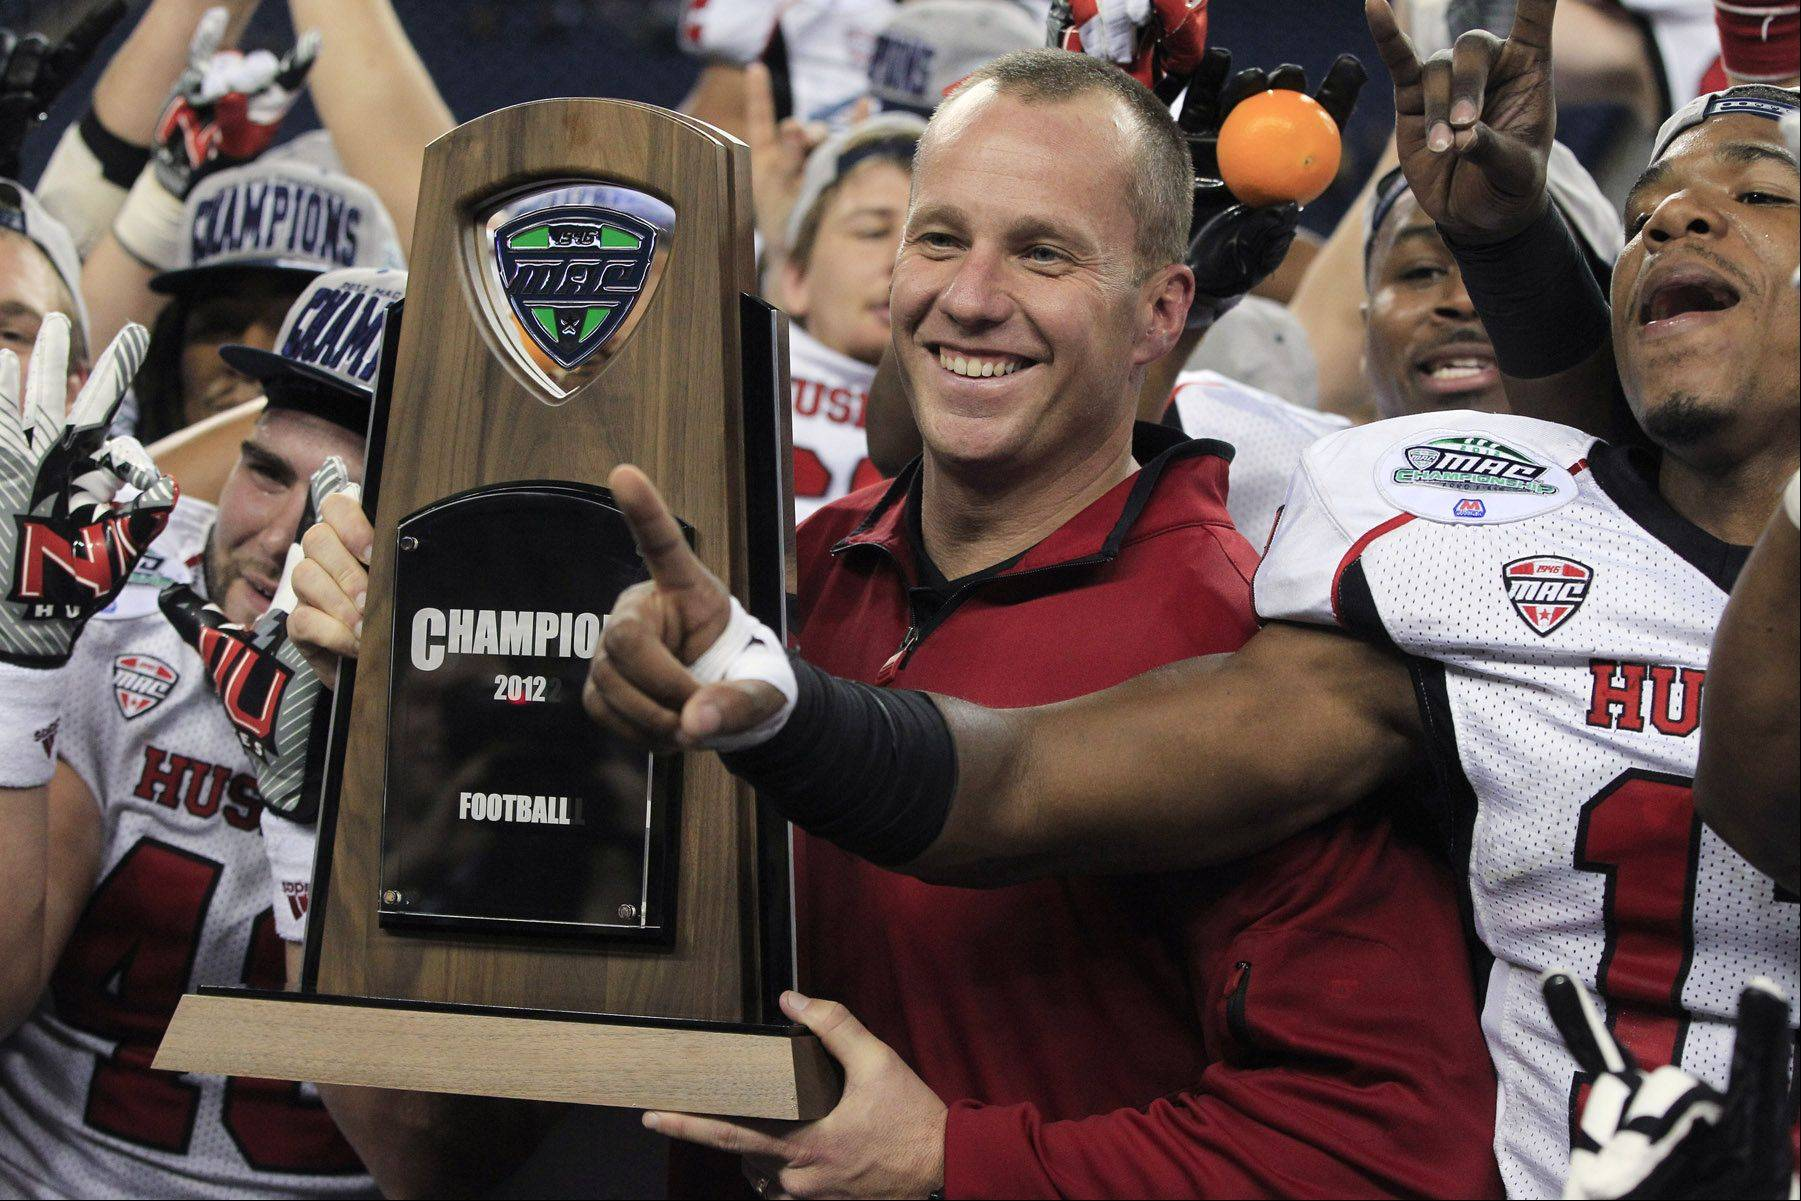 NIU coach Dave Doeren displays the Mid-American Conference championship trophy after his the Huskies beat Kent State 44-37 in double overtime Friday in Detroit. Less than 24 hours later, Doeren departed NIU to coach North Carolina State, a scenario Mike Spellman is having a hard time digesting.